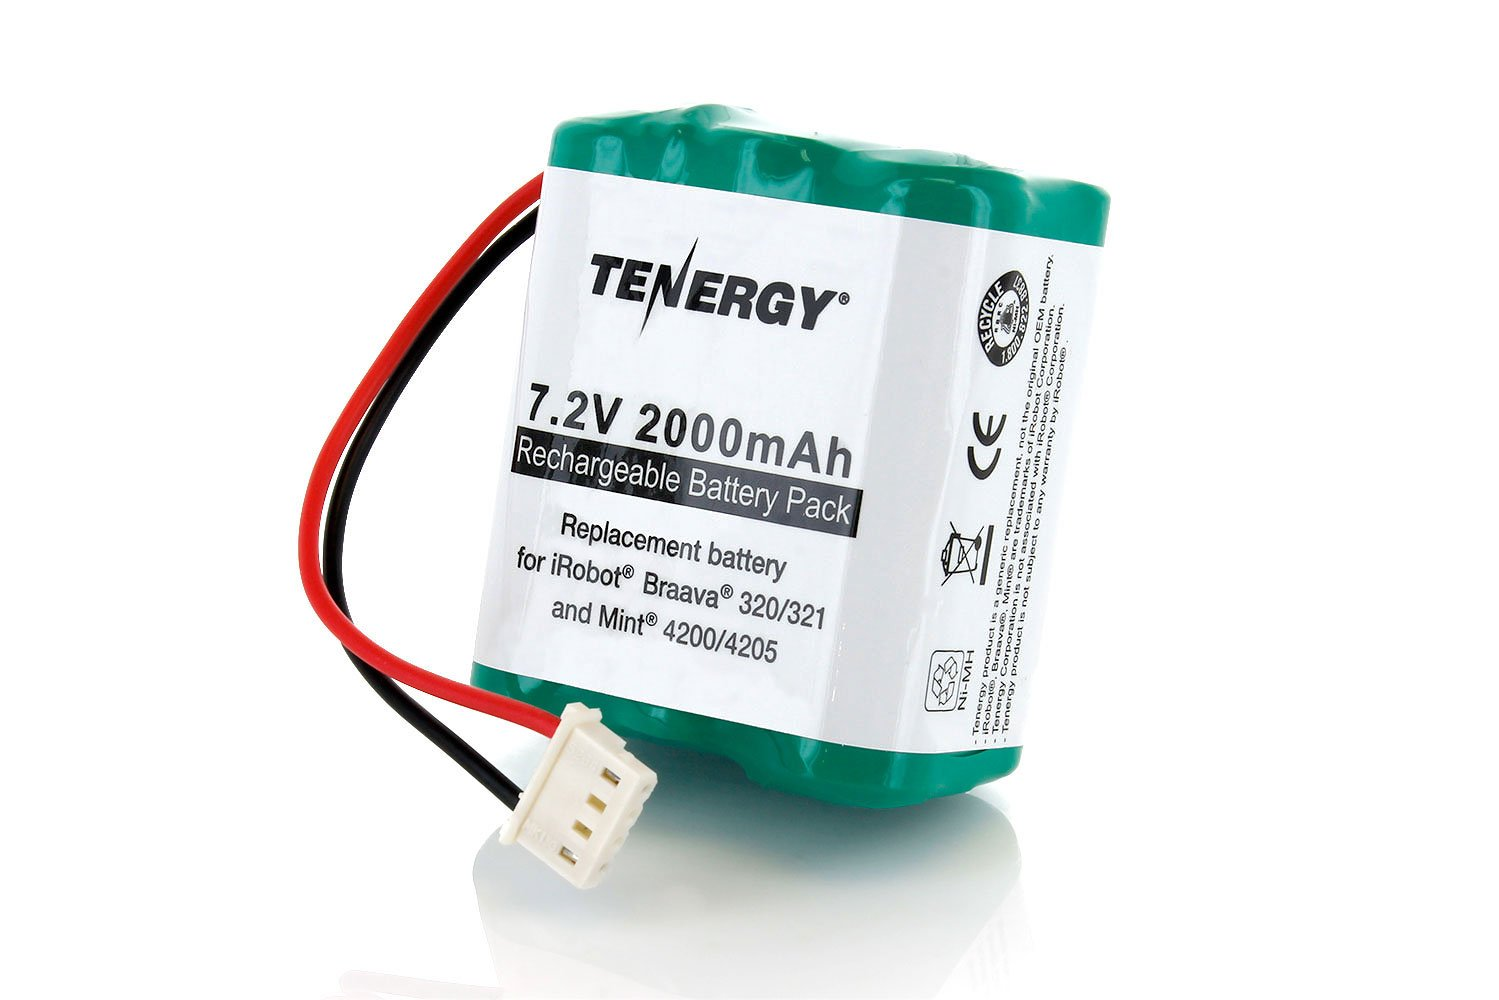 Tenergy 7.2V 2000mAh Replacement Battery for iRobot Braava 320/321 & Mint 4200/4205 11735